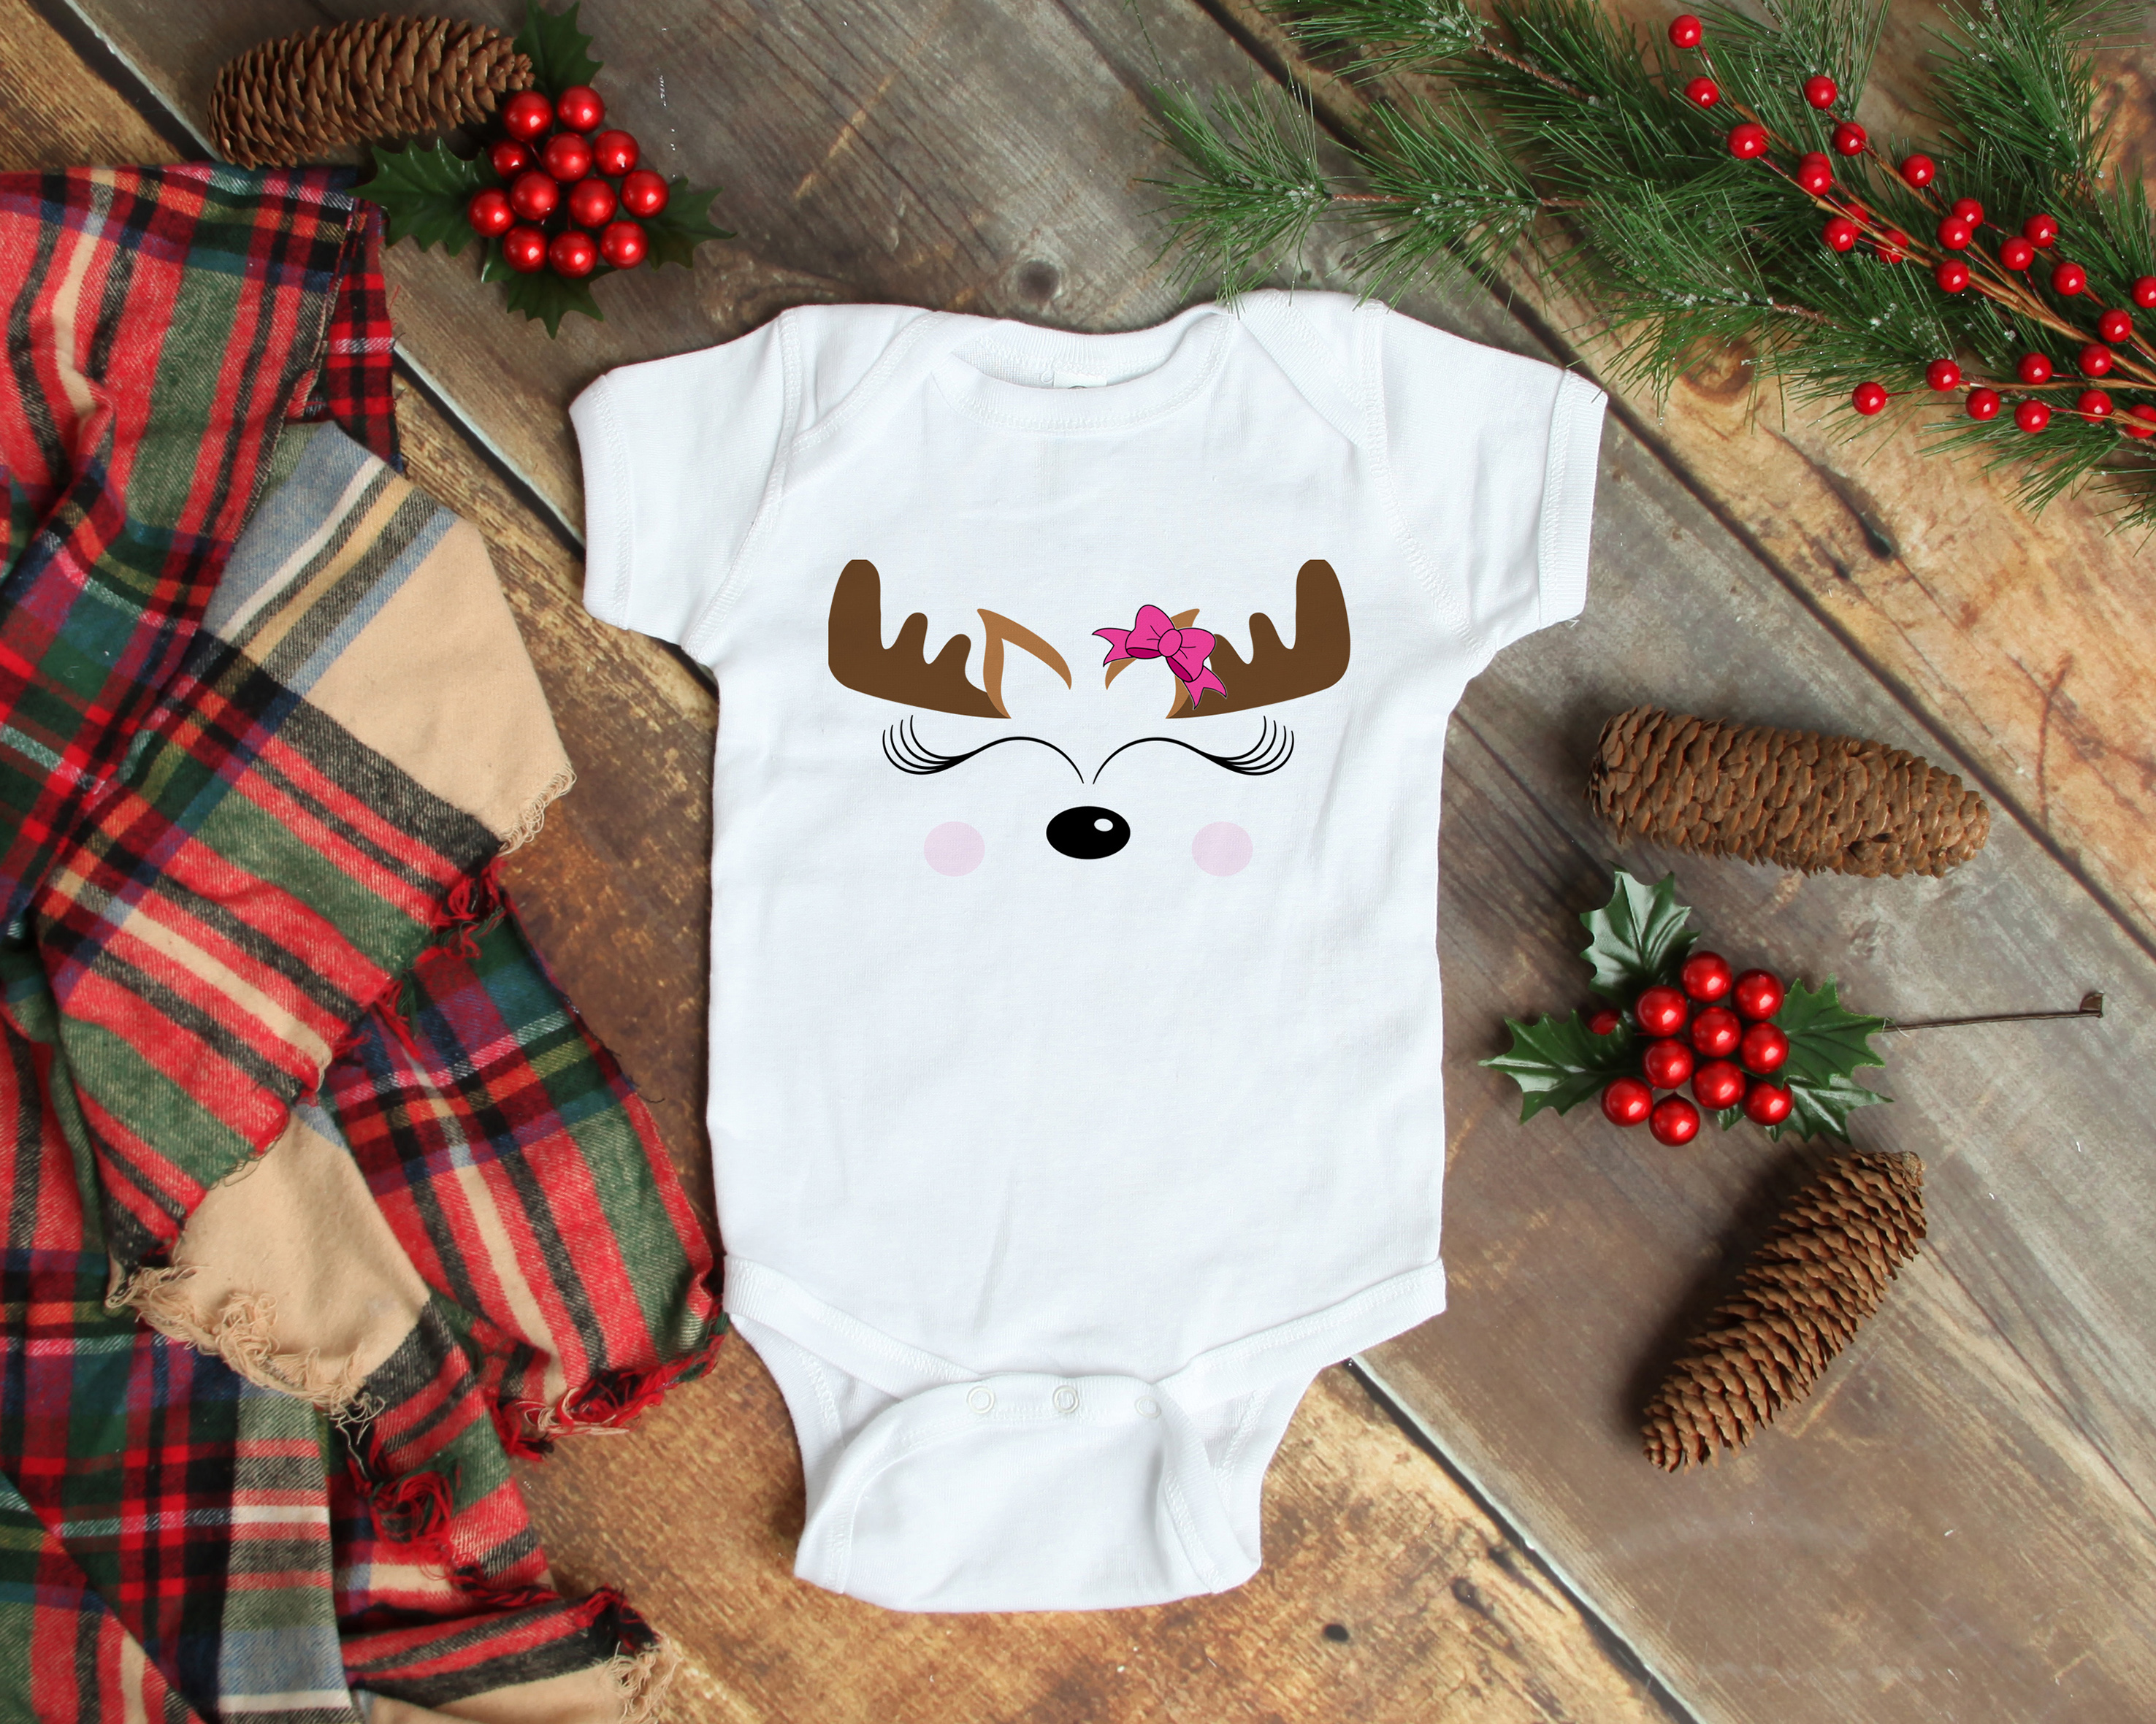 Reindeer Face Christmas SVG example image 2